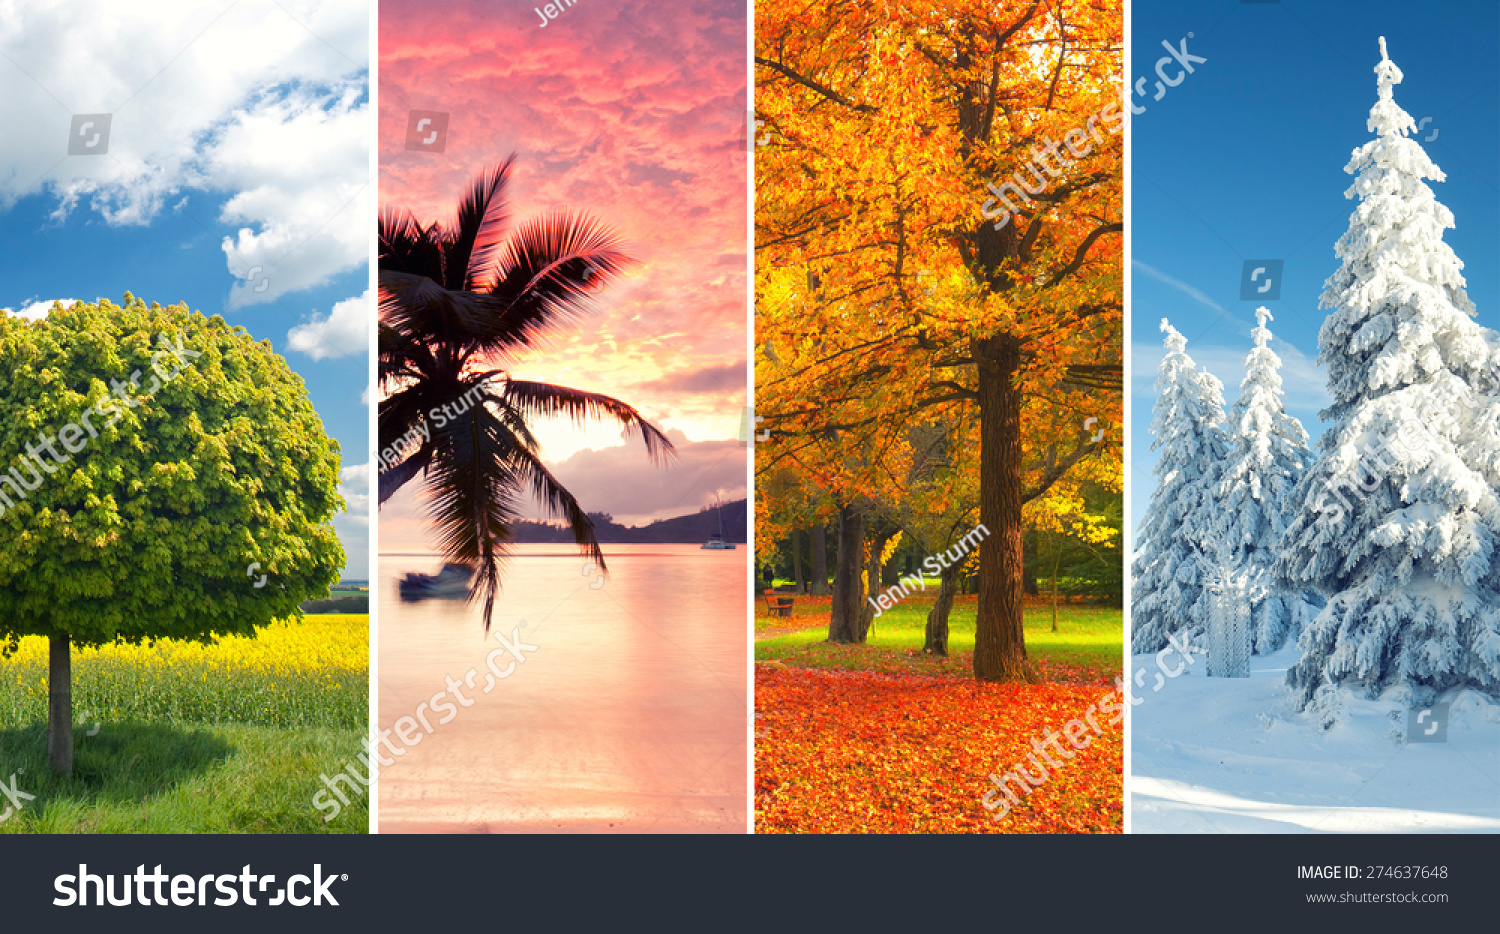 Seasons Collage Stock Images, Royalty-Free Images &- Vectors ...